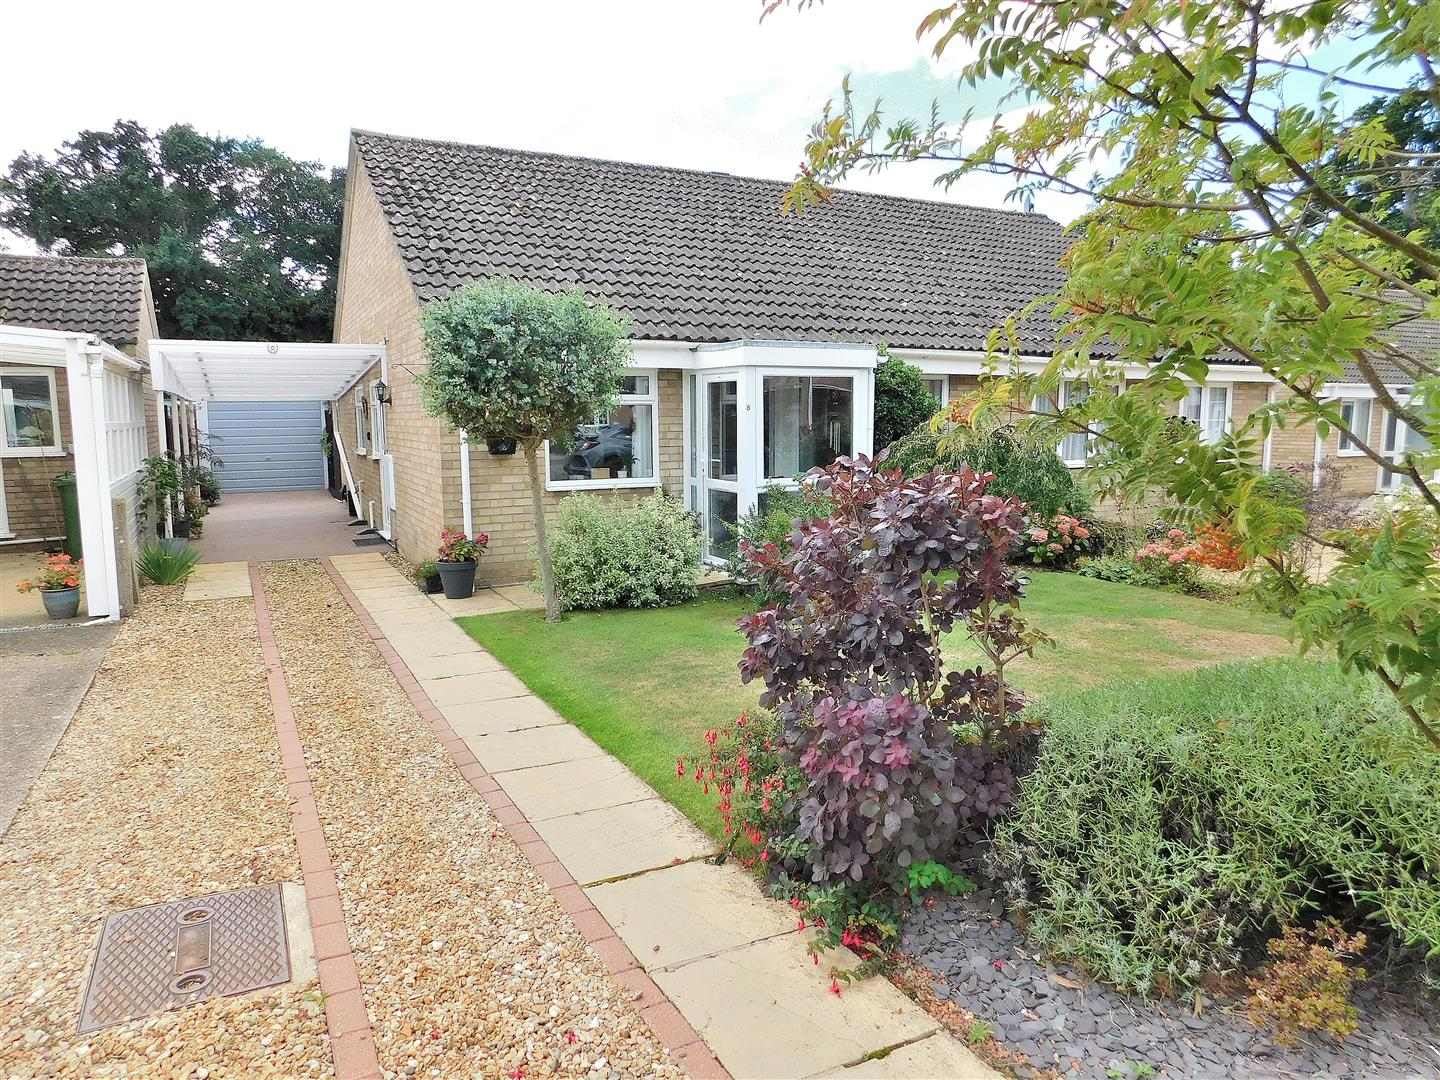 2 bed semi-detached bungalow for sale in King's Lynn, PE31 7BY  - Property Image 1